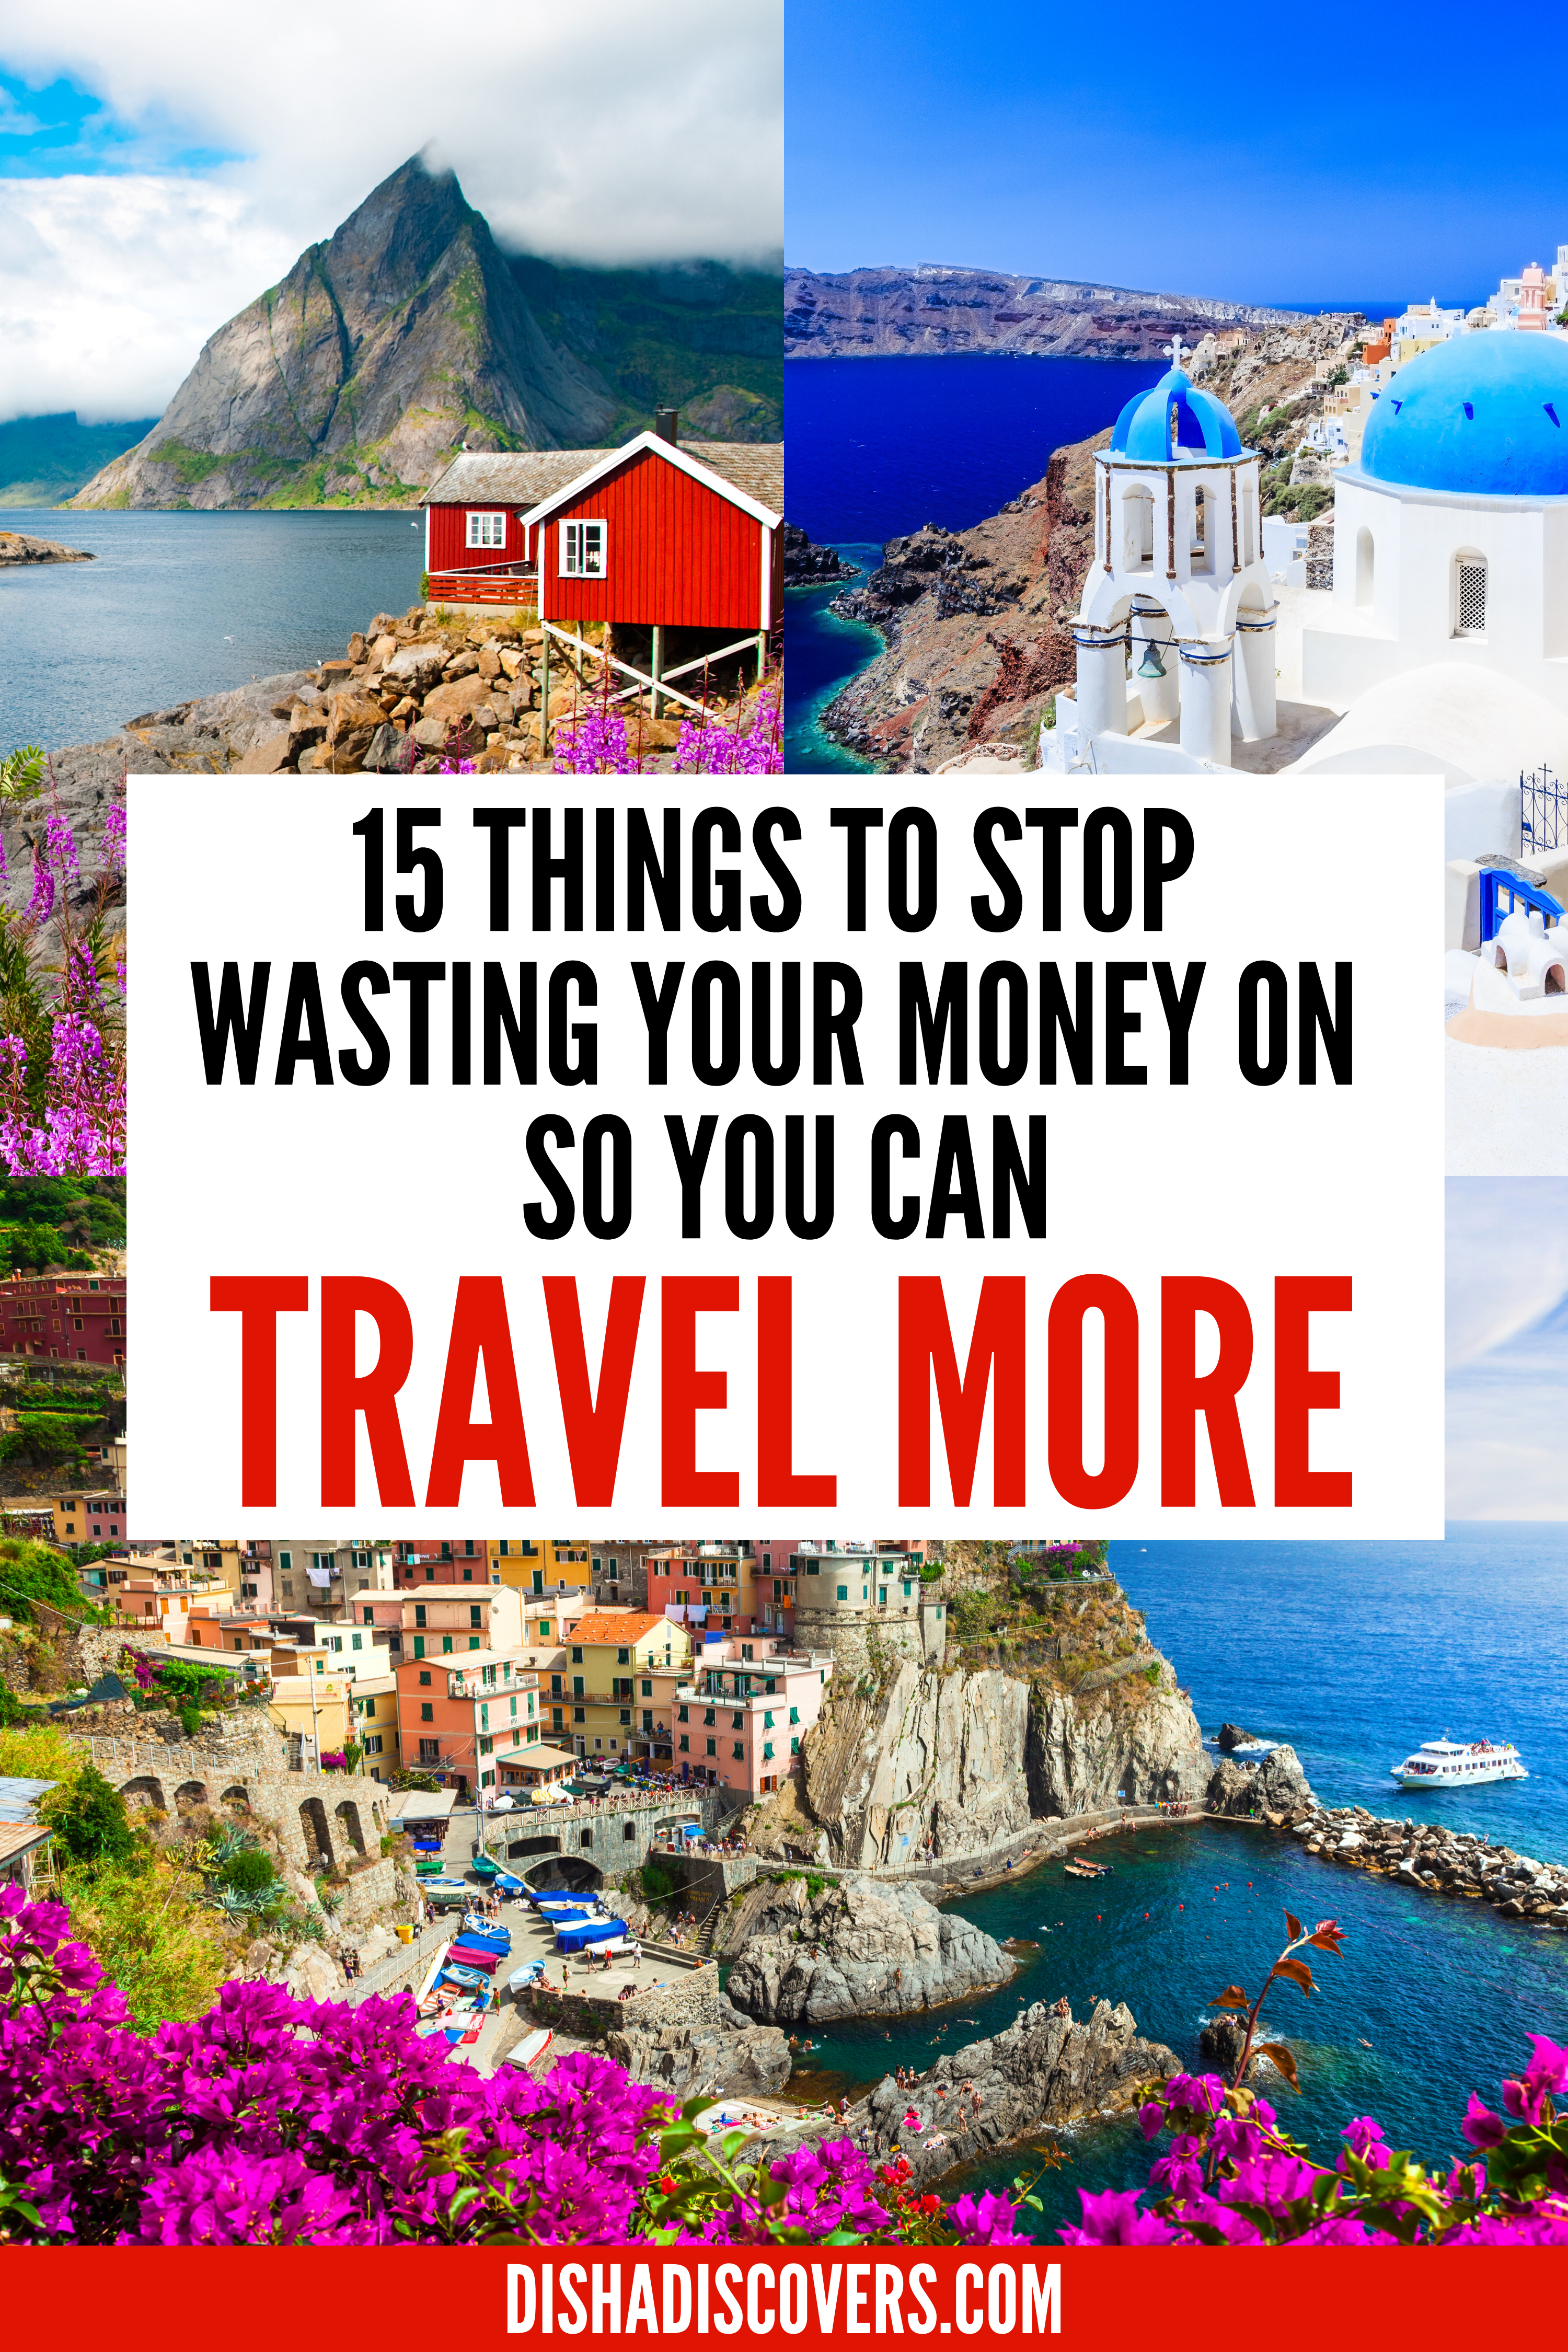 15 Unnecessary Expenses to Cut so You Can Afford to Travel - Do you want to travel more, but money is stopping you? Here are 15 unnecessary expenses you are wasting your money on that you can save for travel. #traveltips #savemoneyfortravel #traveltipsandtricks #travelhacks #travelbudget #travelbudgettips #travelbudgetsavingmoney #traveltipsmoney